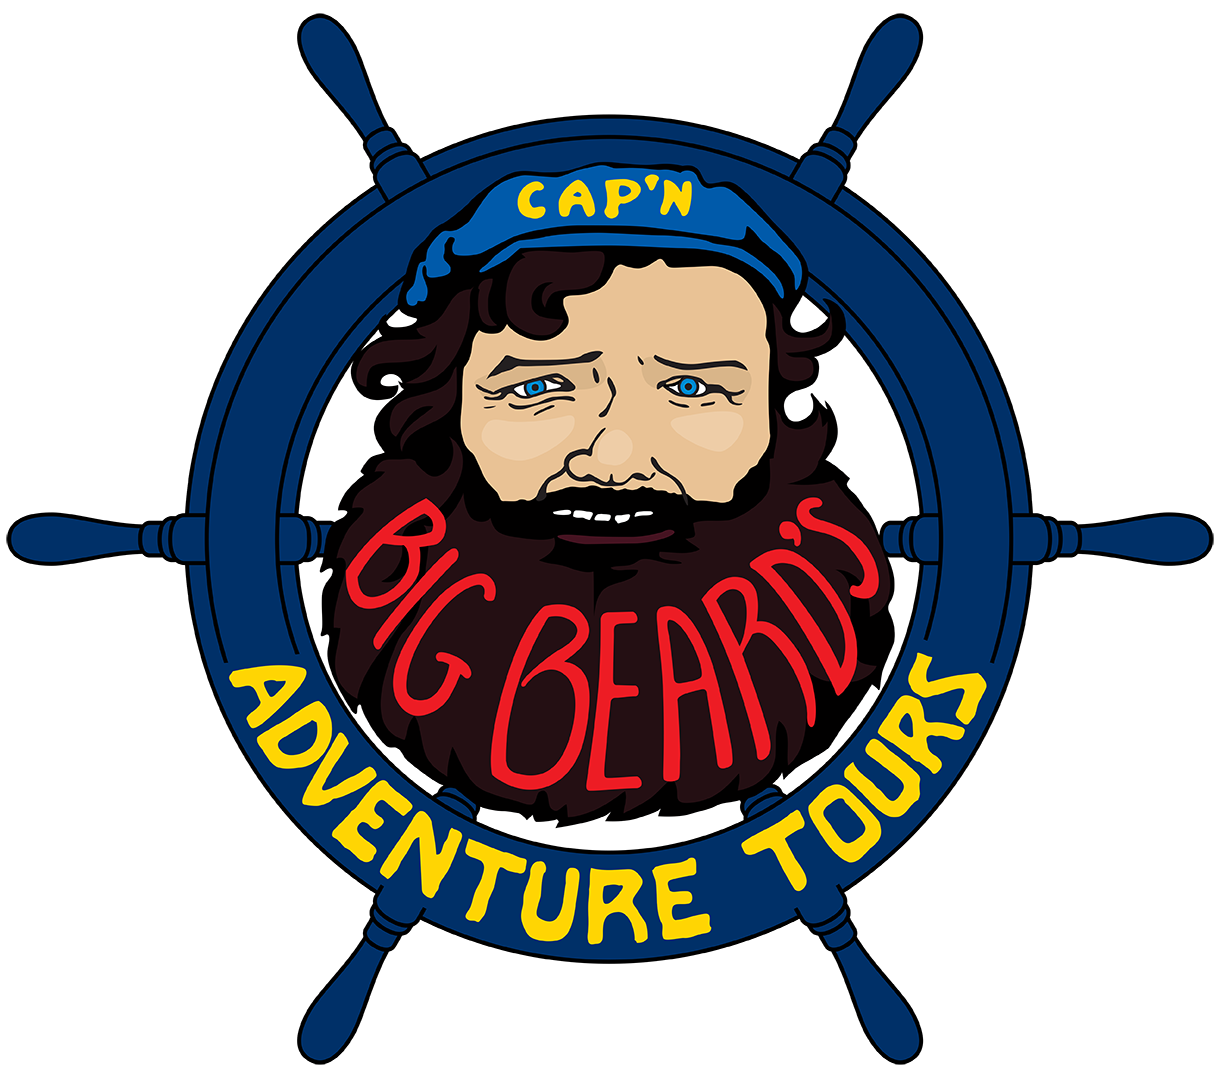 Big Beards Adventure Tours